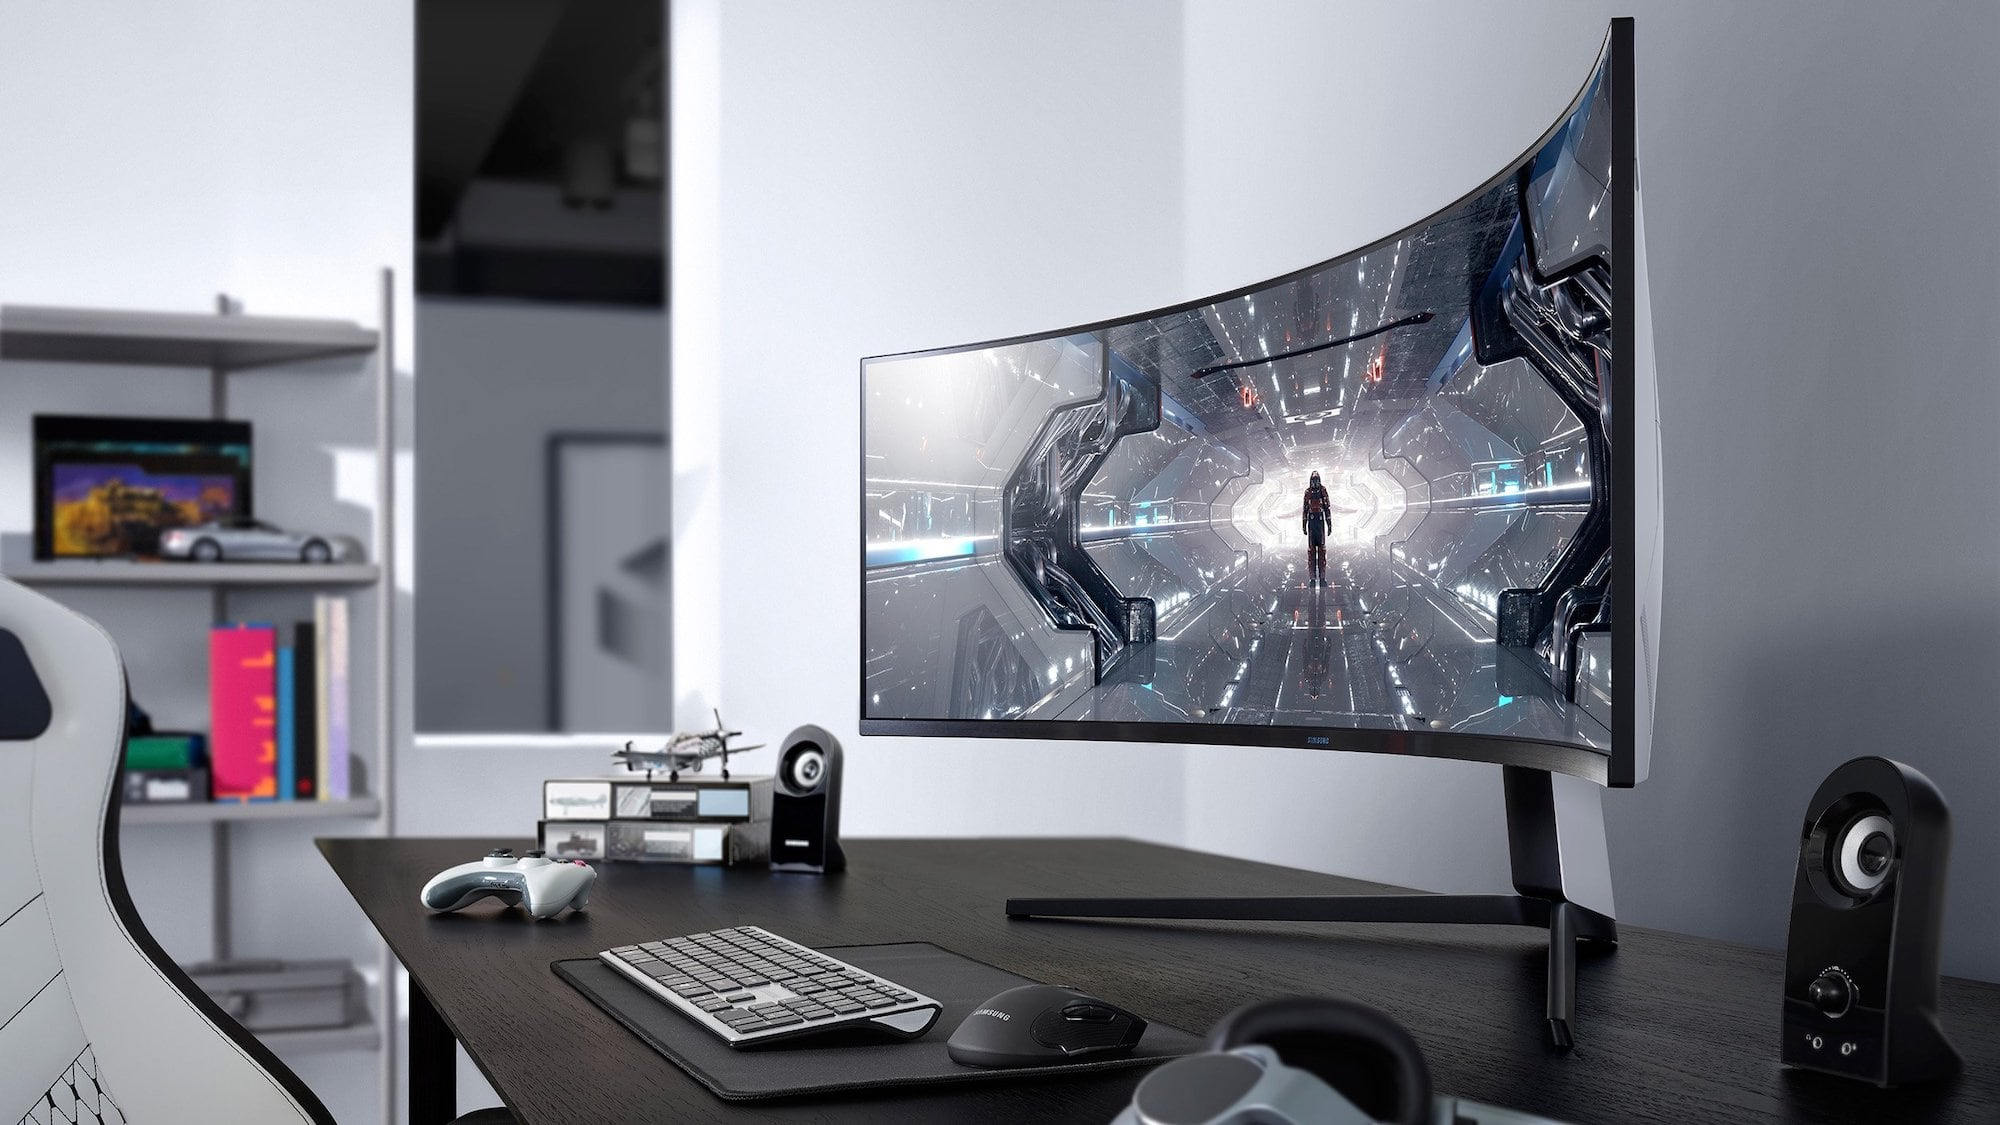 Samsung Odyssey G9 2021 curved gaming monitor boasts a Quantum MiniLED display